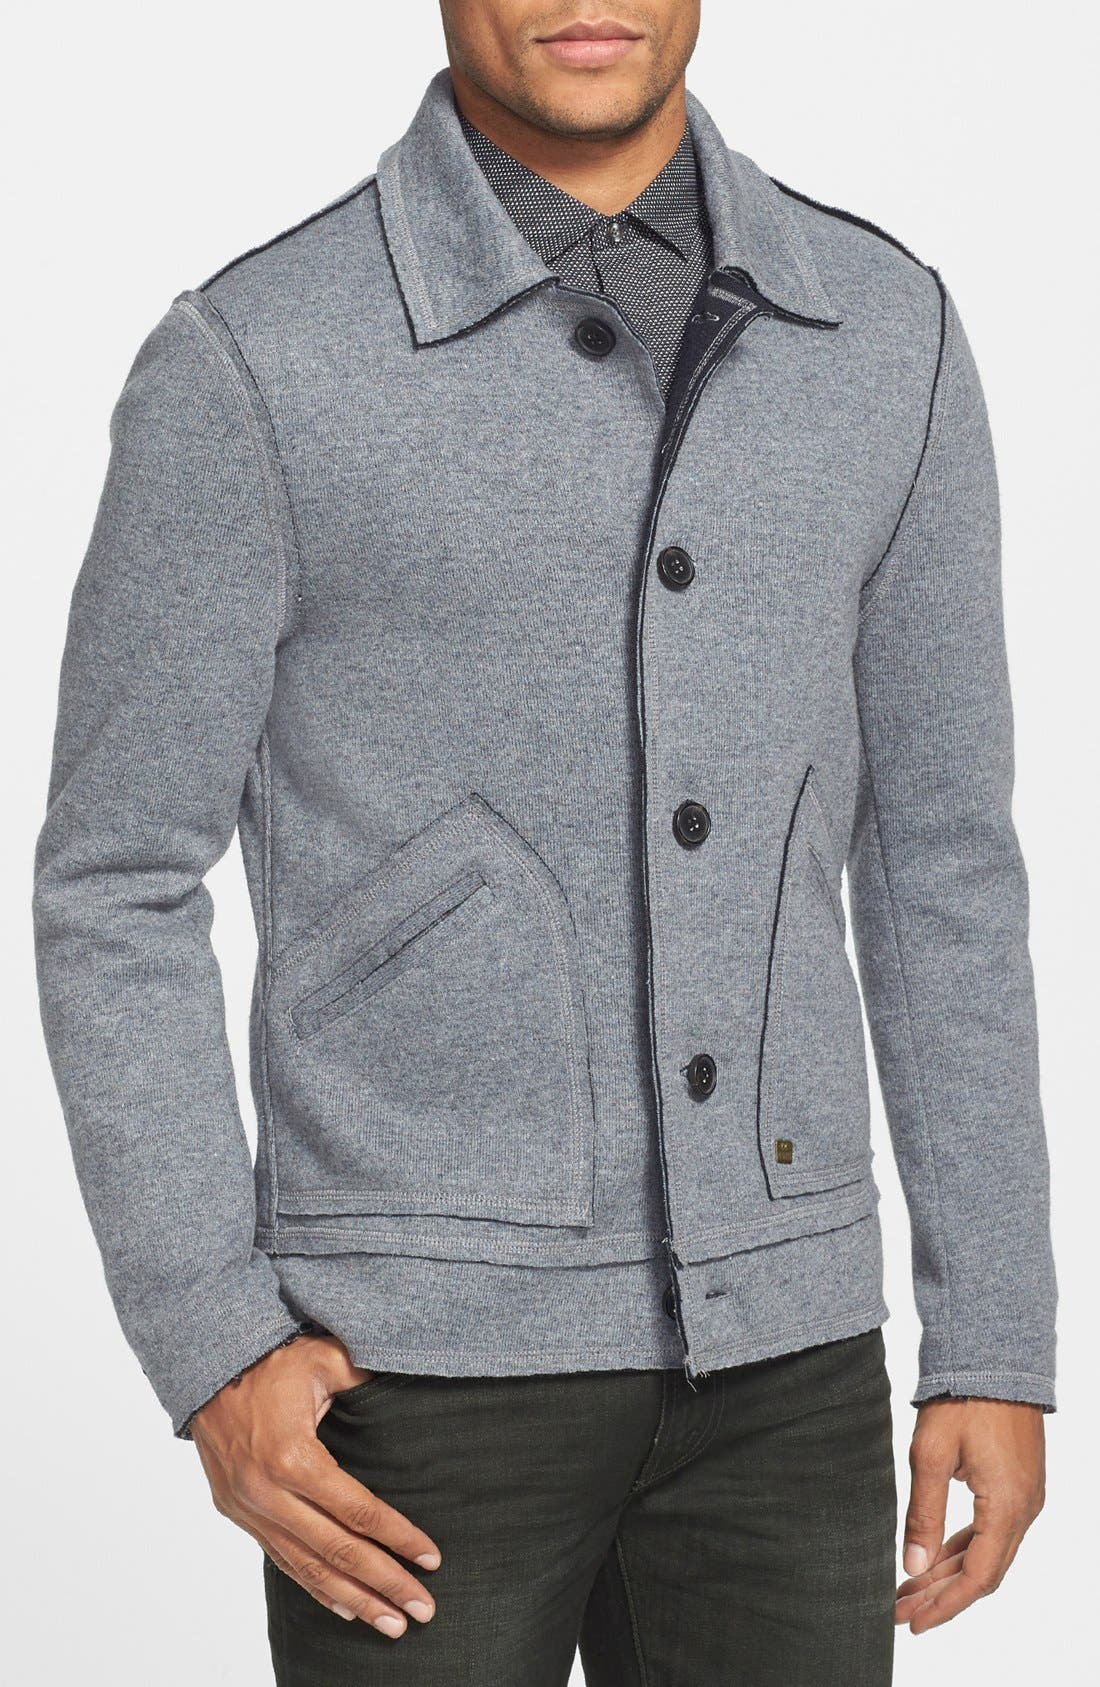 Alternate Image 1 Selected - Antony Morato Wool Blend Jacket